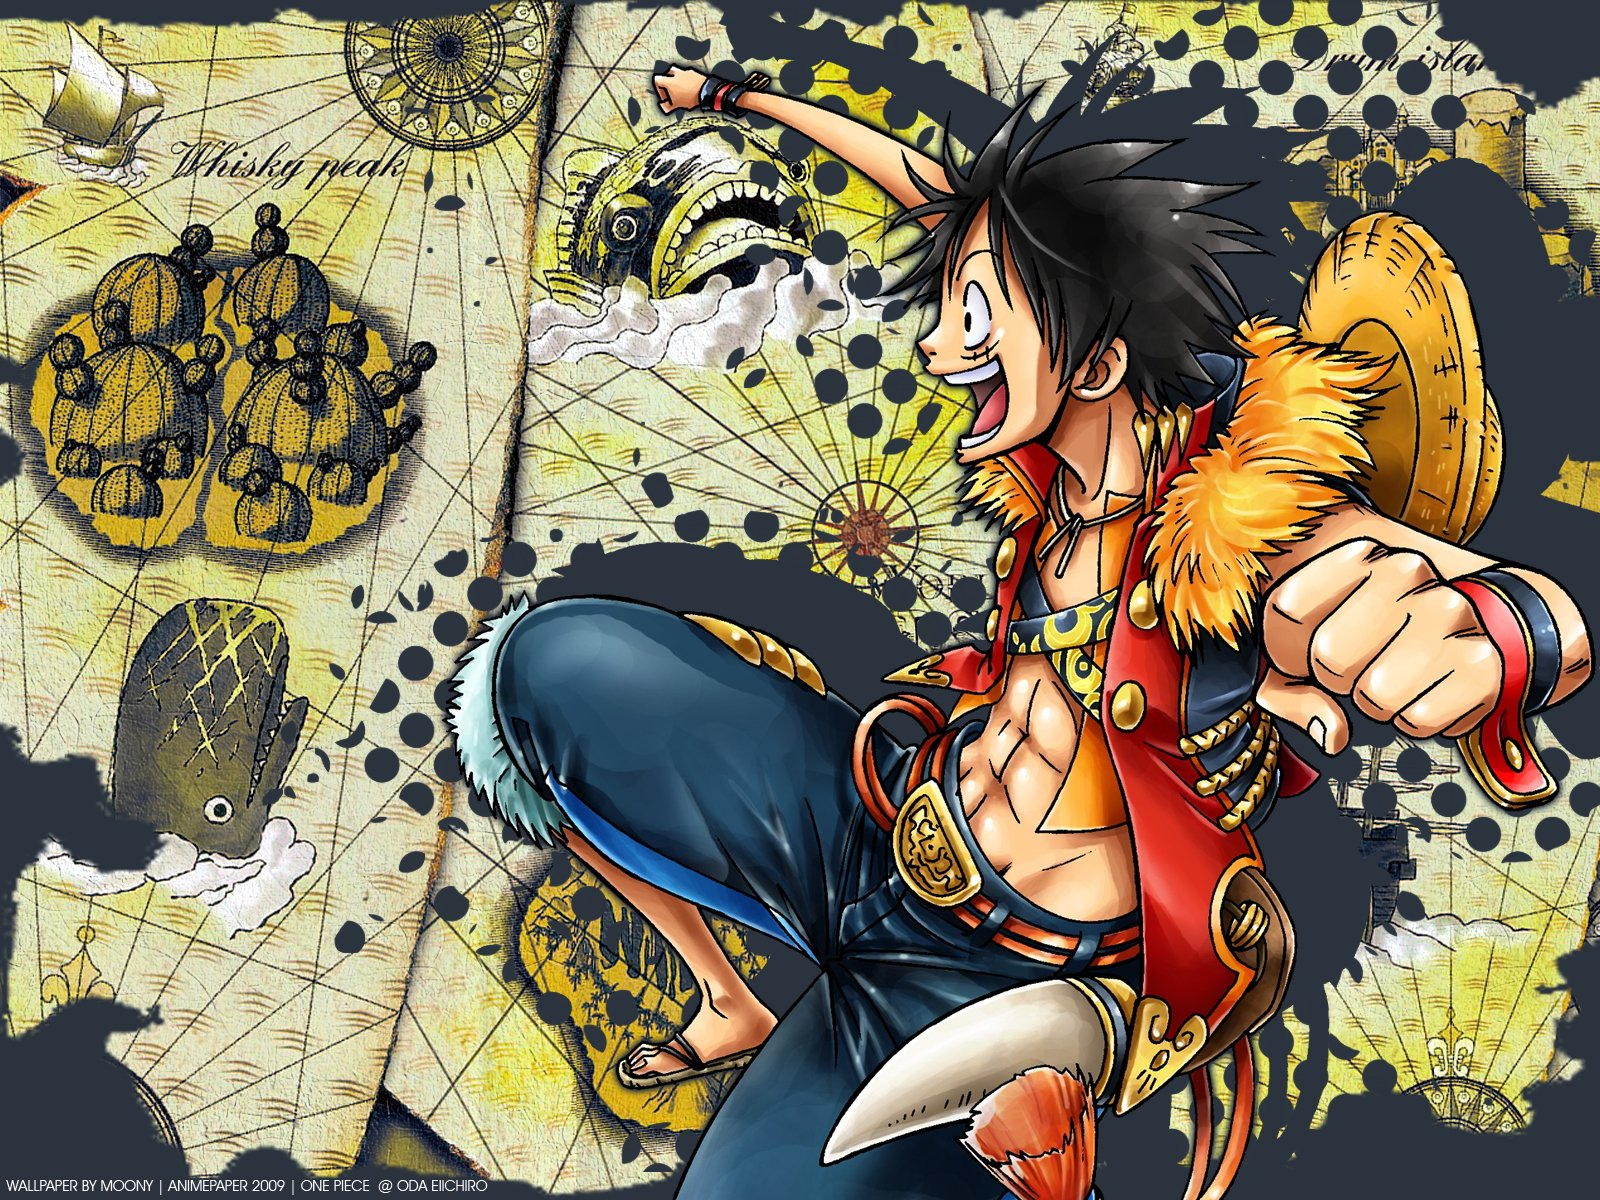 567 One Piece Hd Wallpapers Background Images Wallpaper Abyss